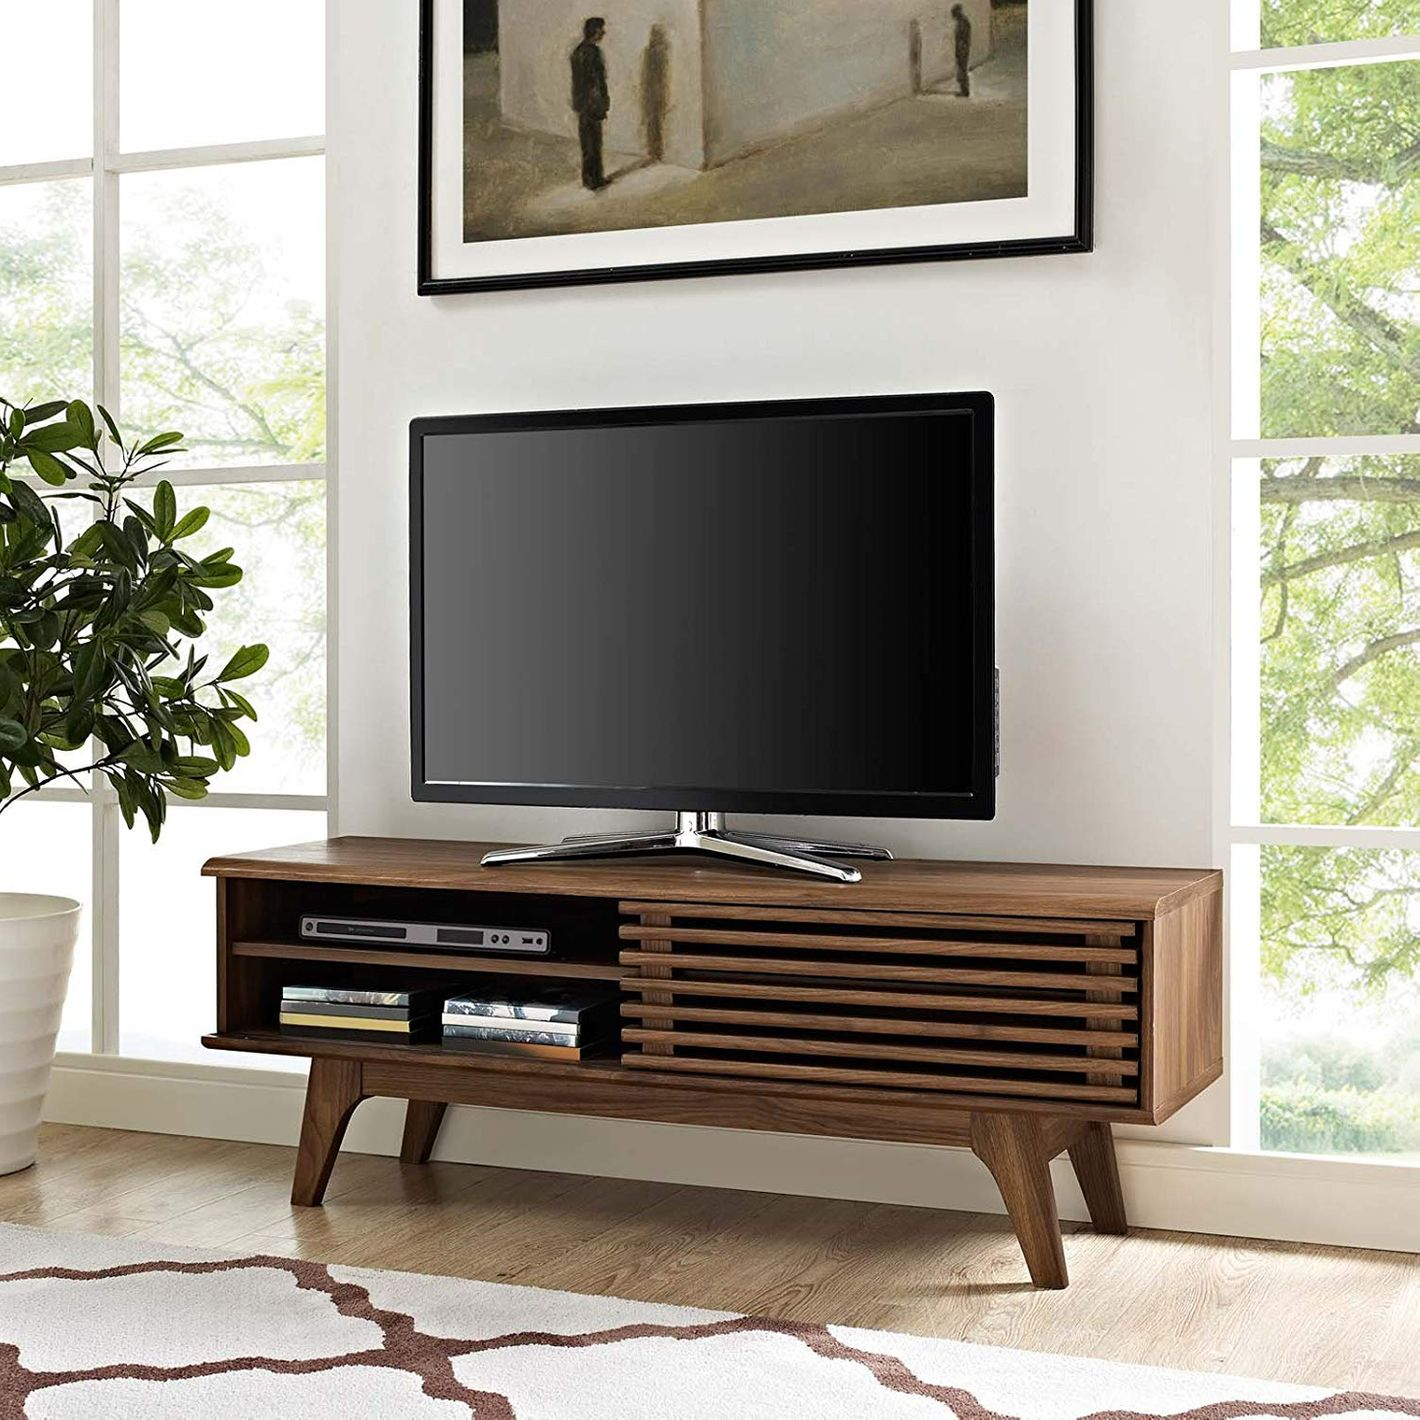 Modway Render Mid-Century Modern Low Profile 44 Inch TV Stand in Walnut